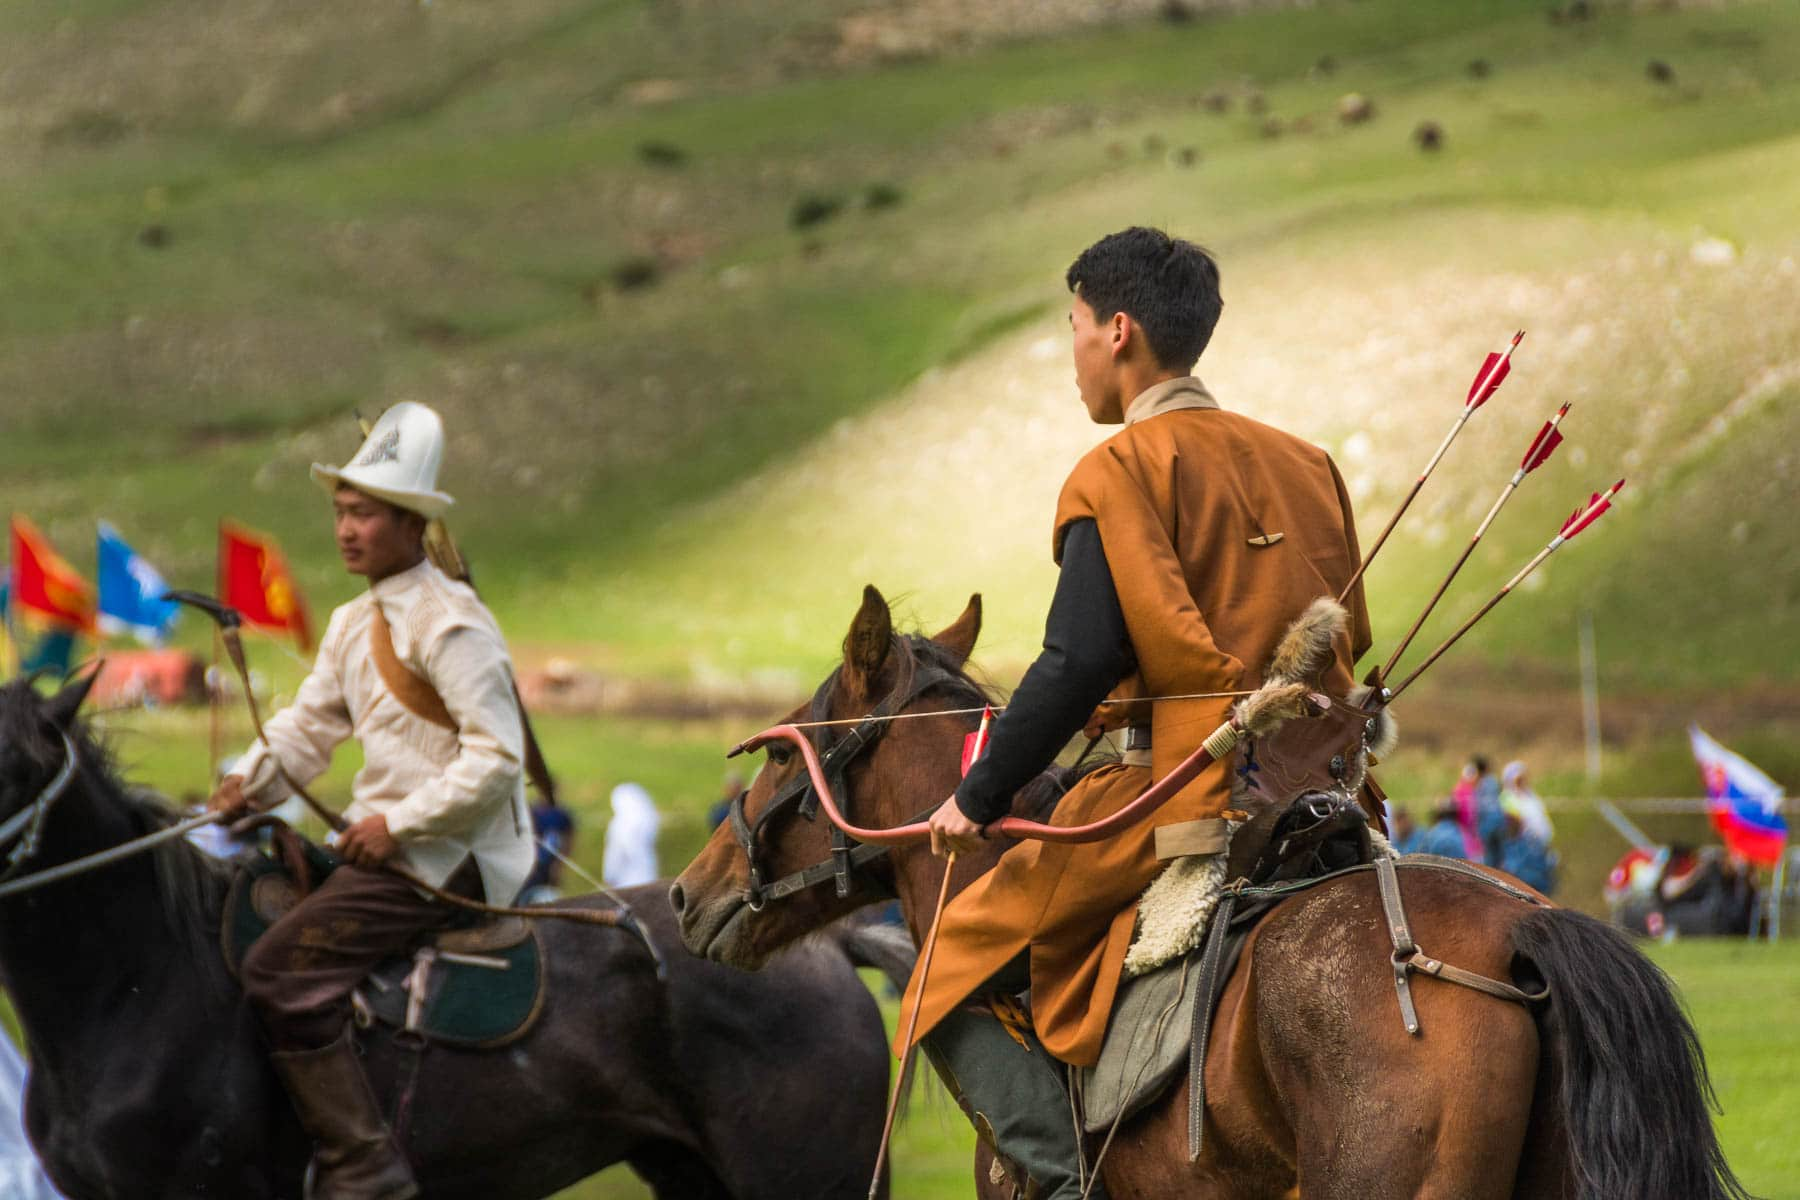 Horseback archer at the 2016 World Nomad Games - Are the 2018 World Nomad Games worth the trip? - Lost With Purpose